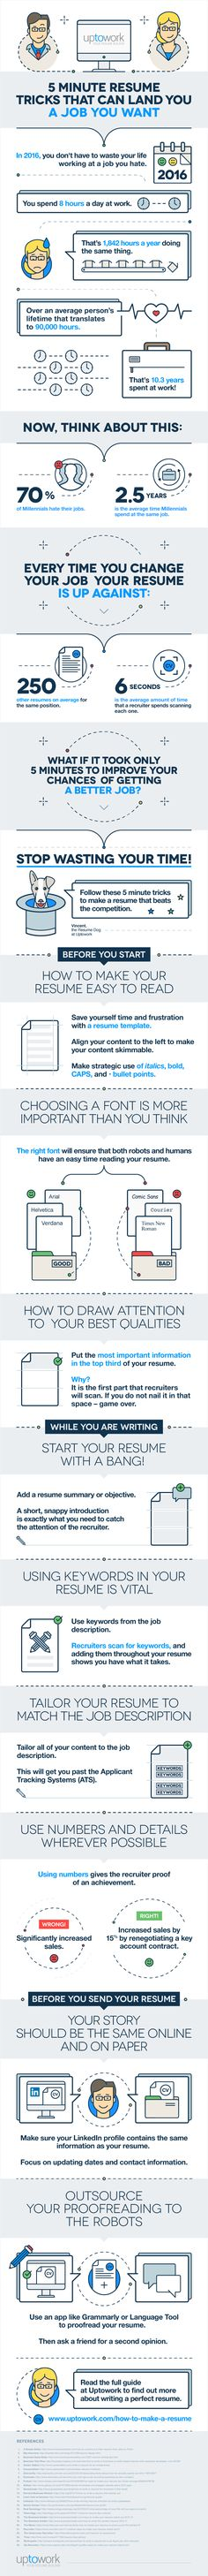 8 Proven Strategies to Nail Your Next Sales Pitch #Infographic - quick resume